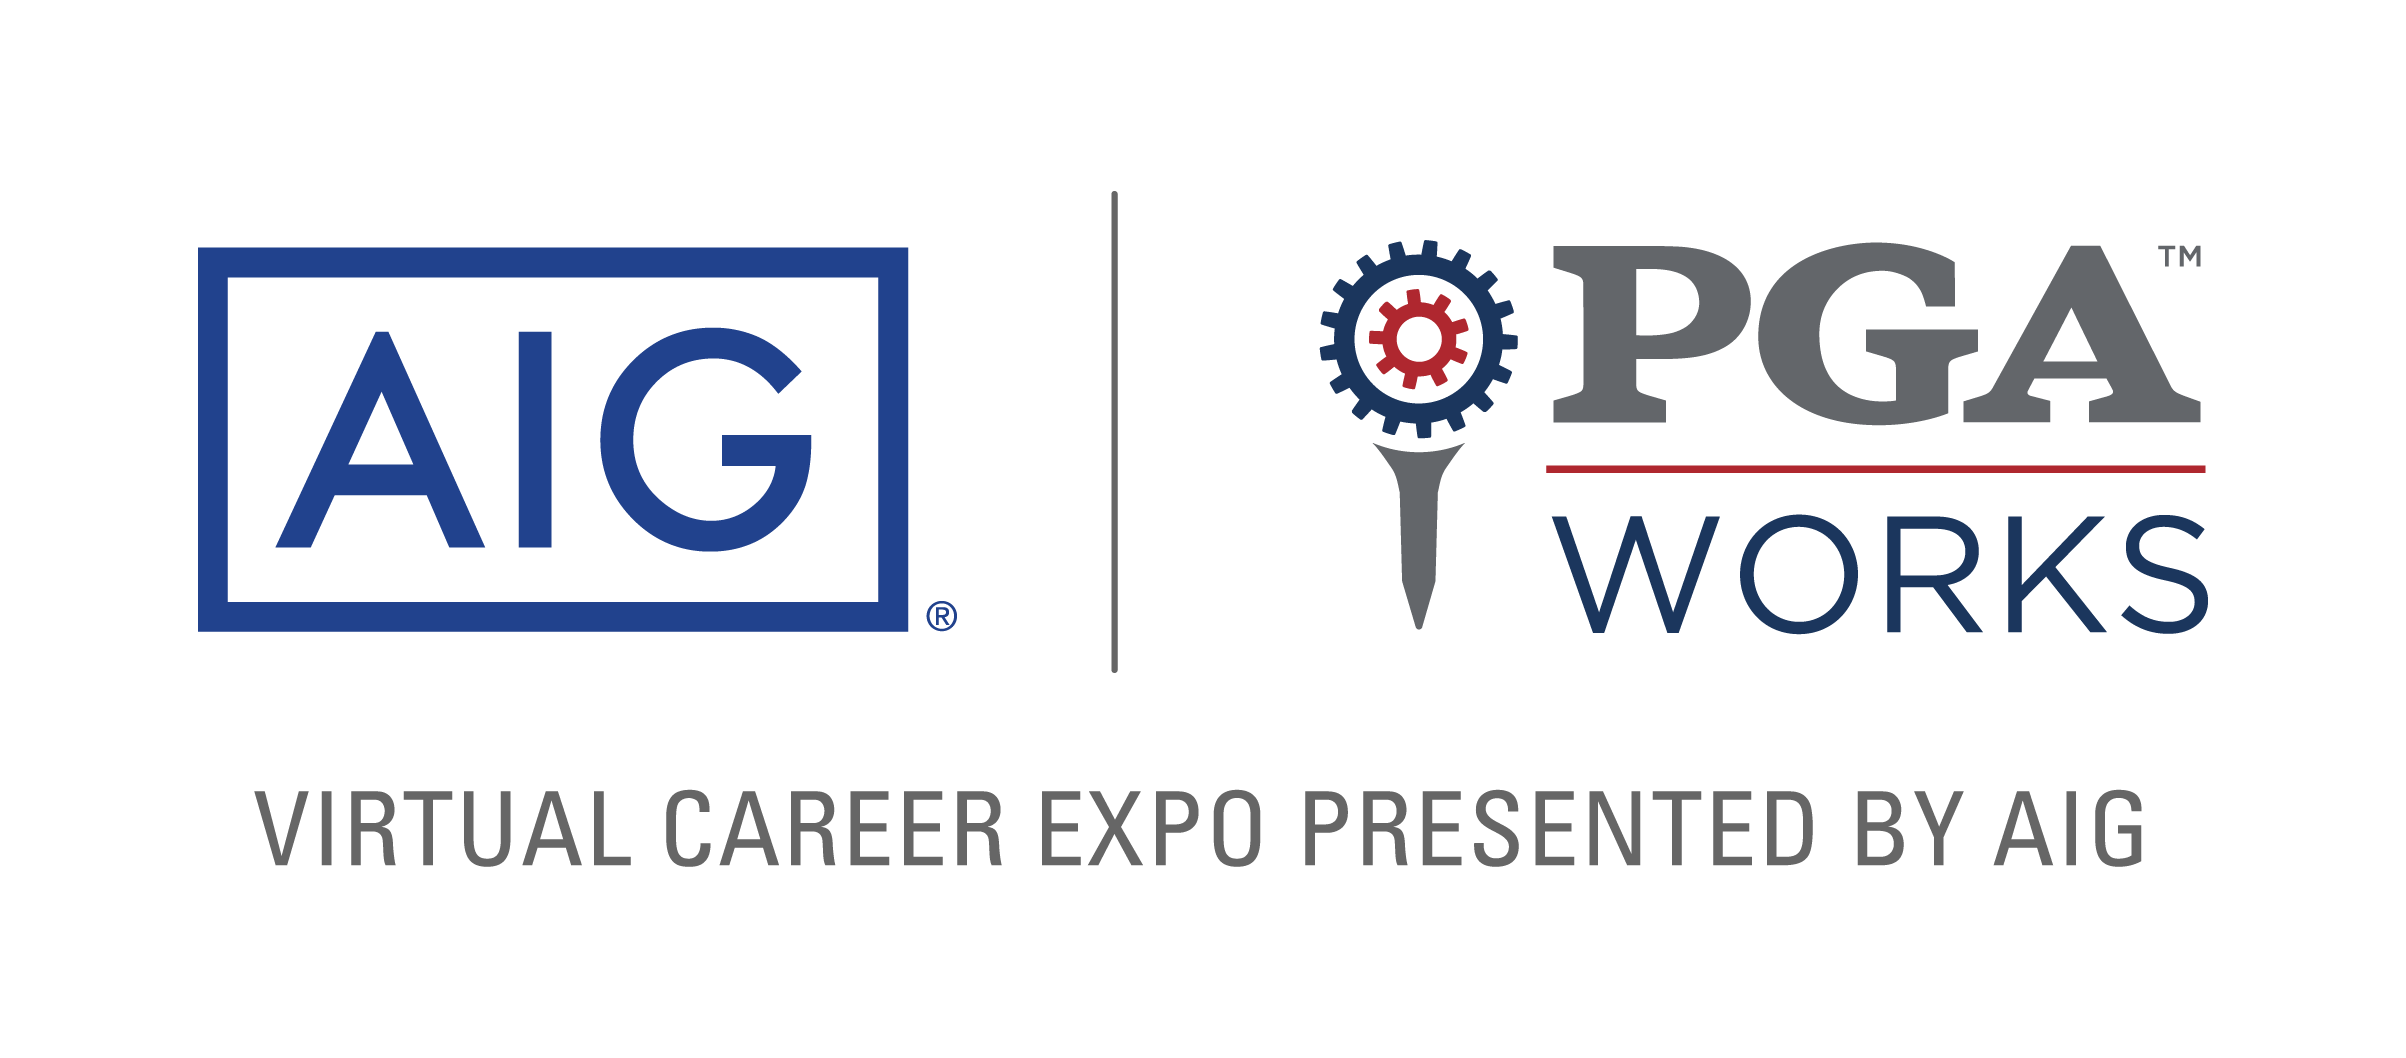 PGA WORKS VIRTUAL CAREER EXPO PRESENTED BY AIG LIFE & RETIREMENT TO BE HELD ON NOVEMBER 17